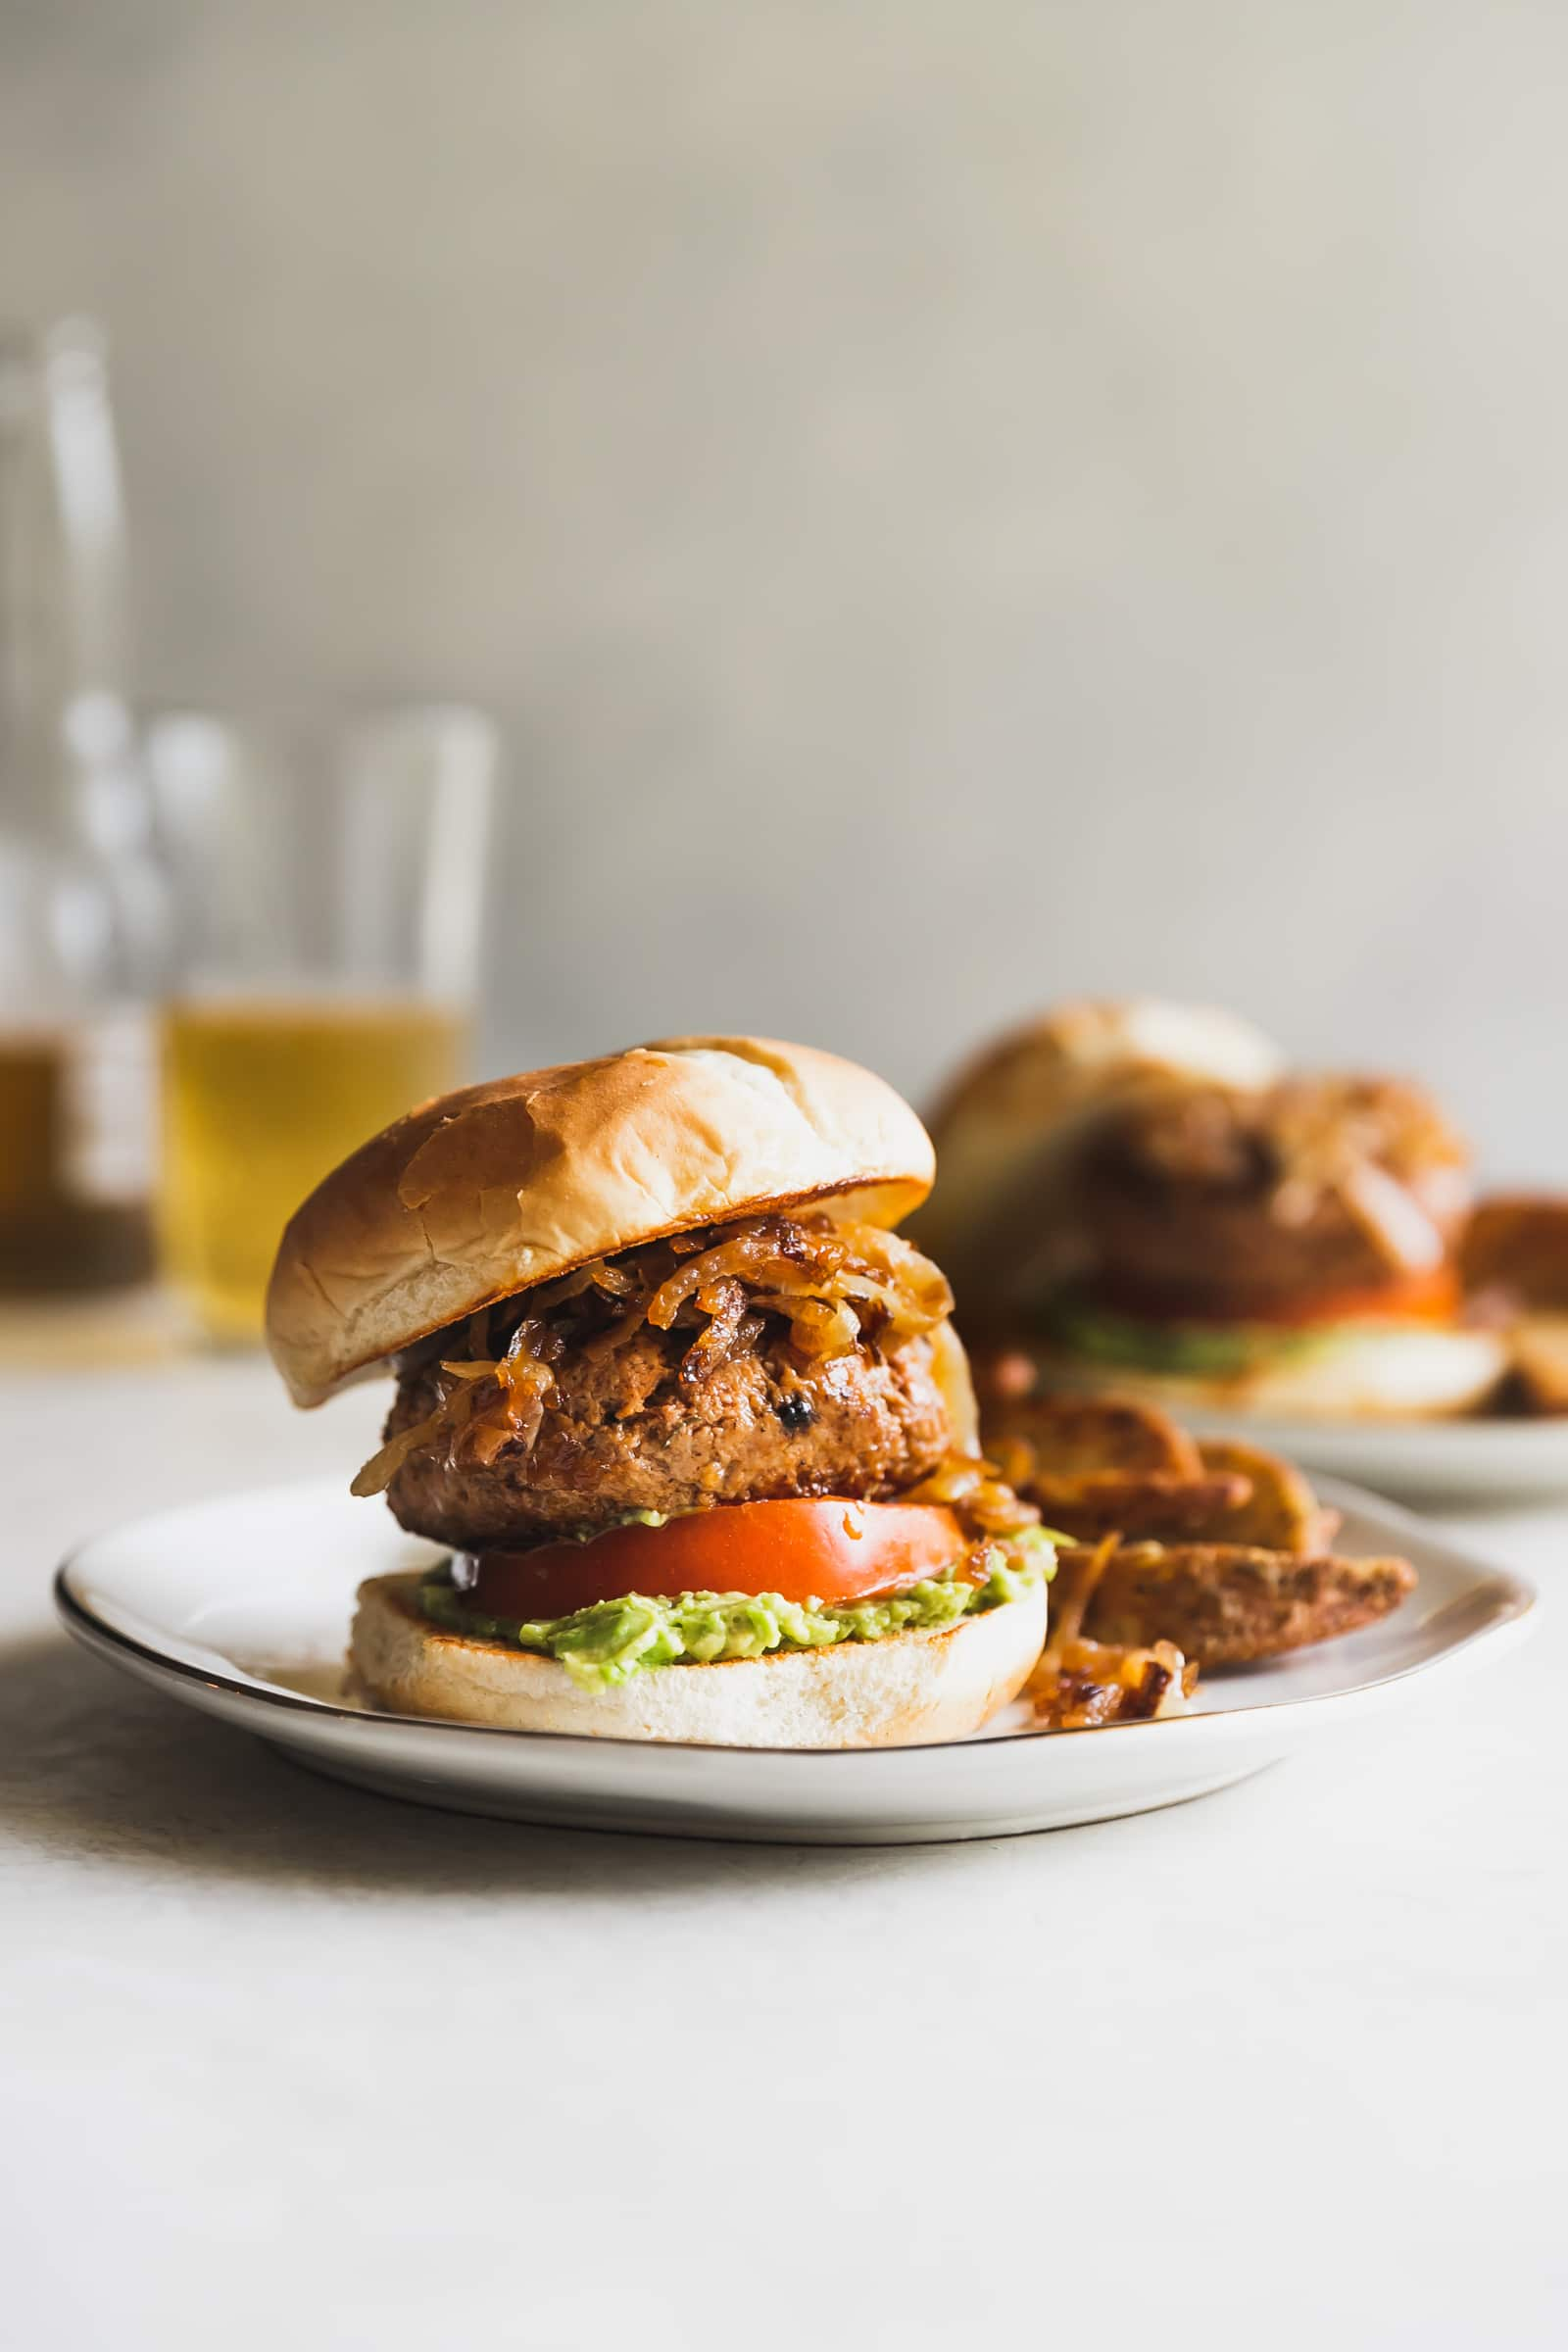 Tender, flavorful juicy turkey burgers made with the best seasoning then topped with mashed avocado, tomato and caramelized onions.